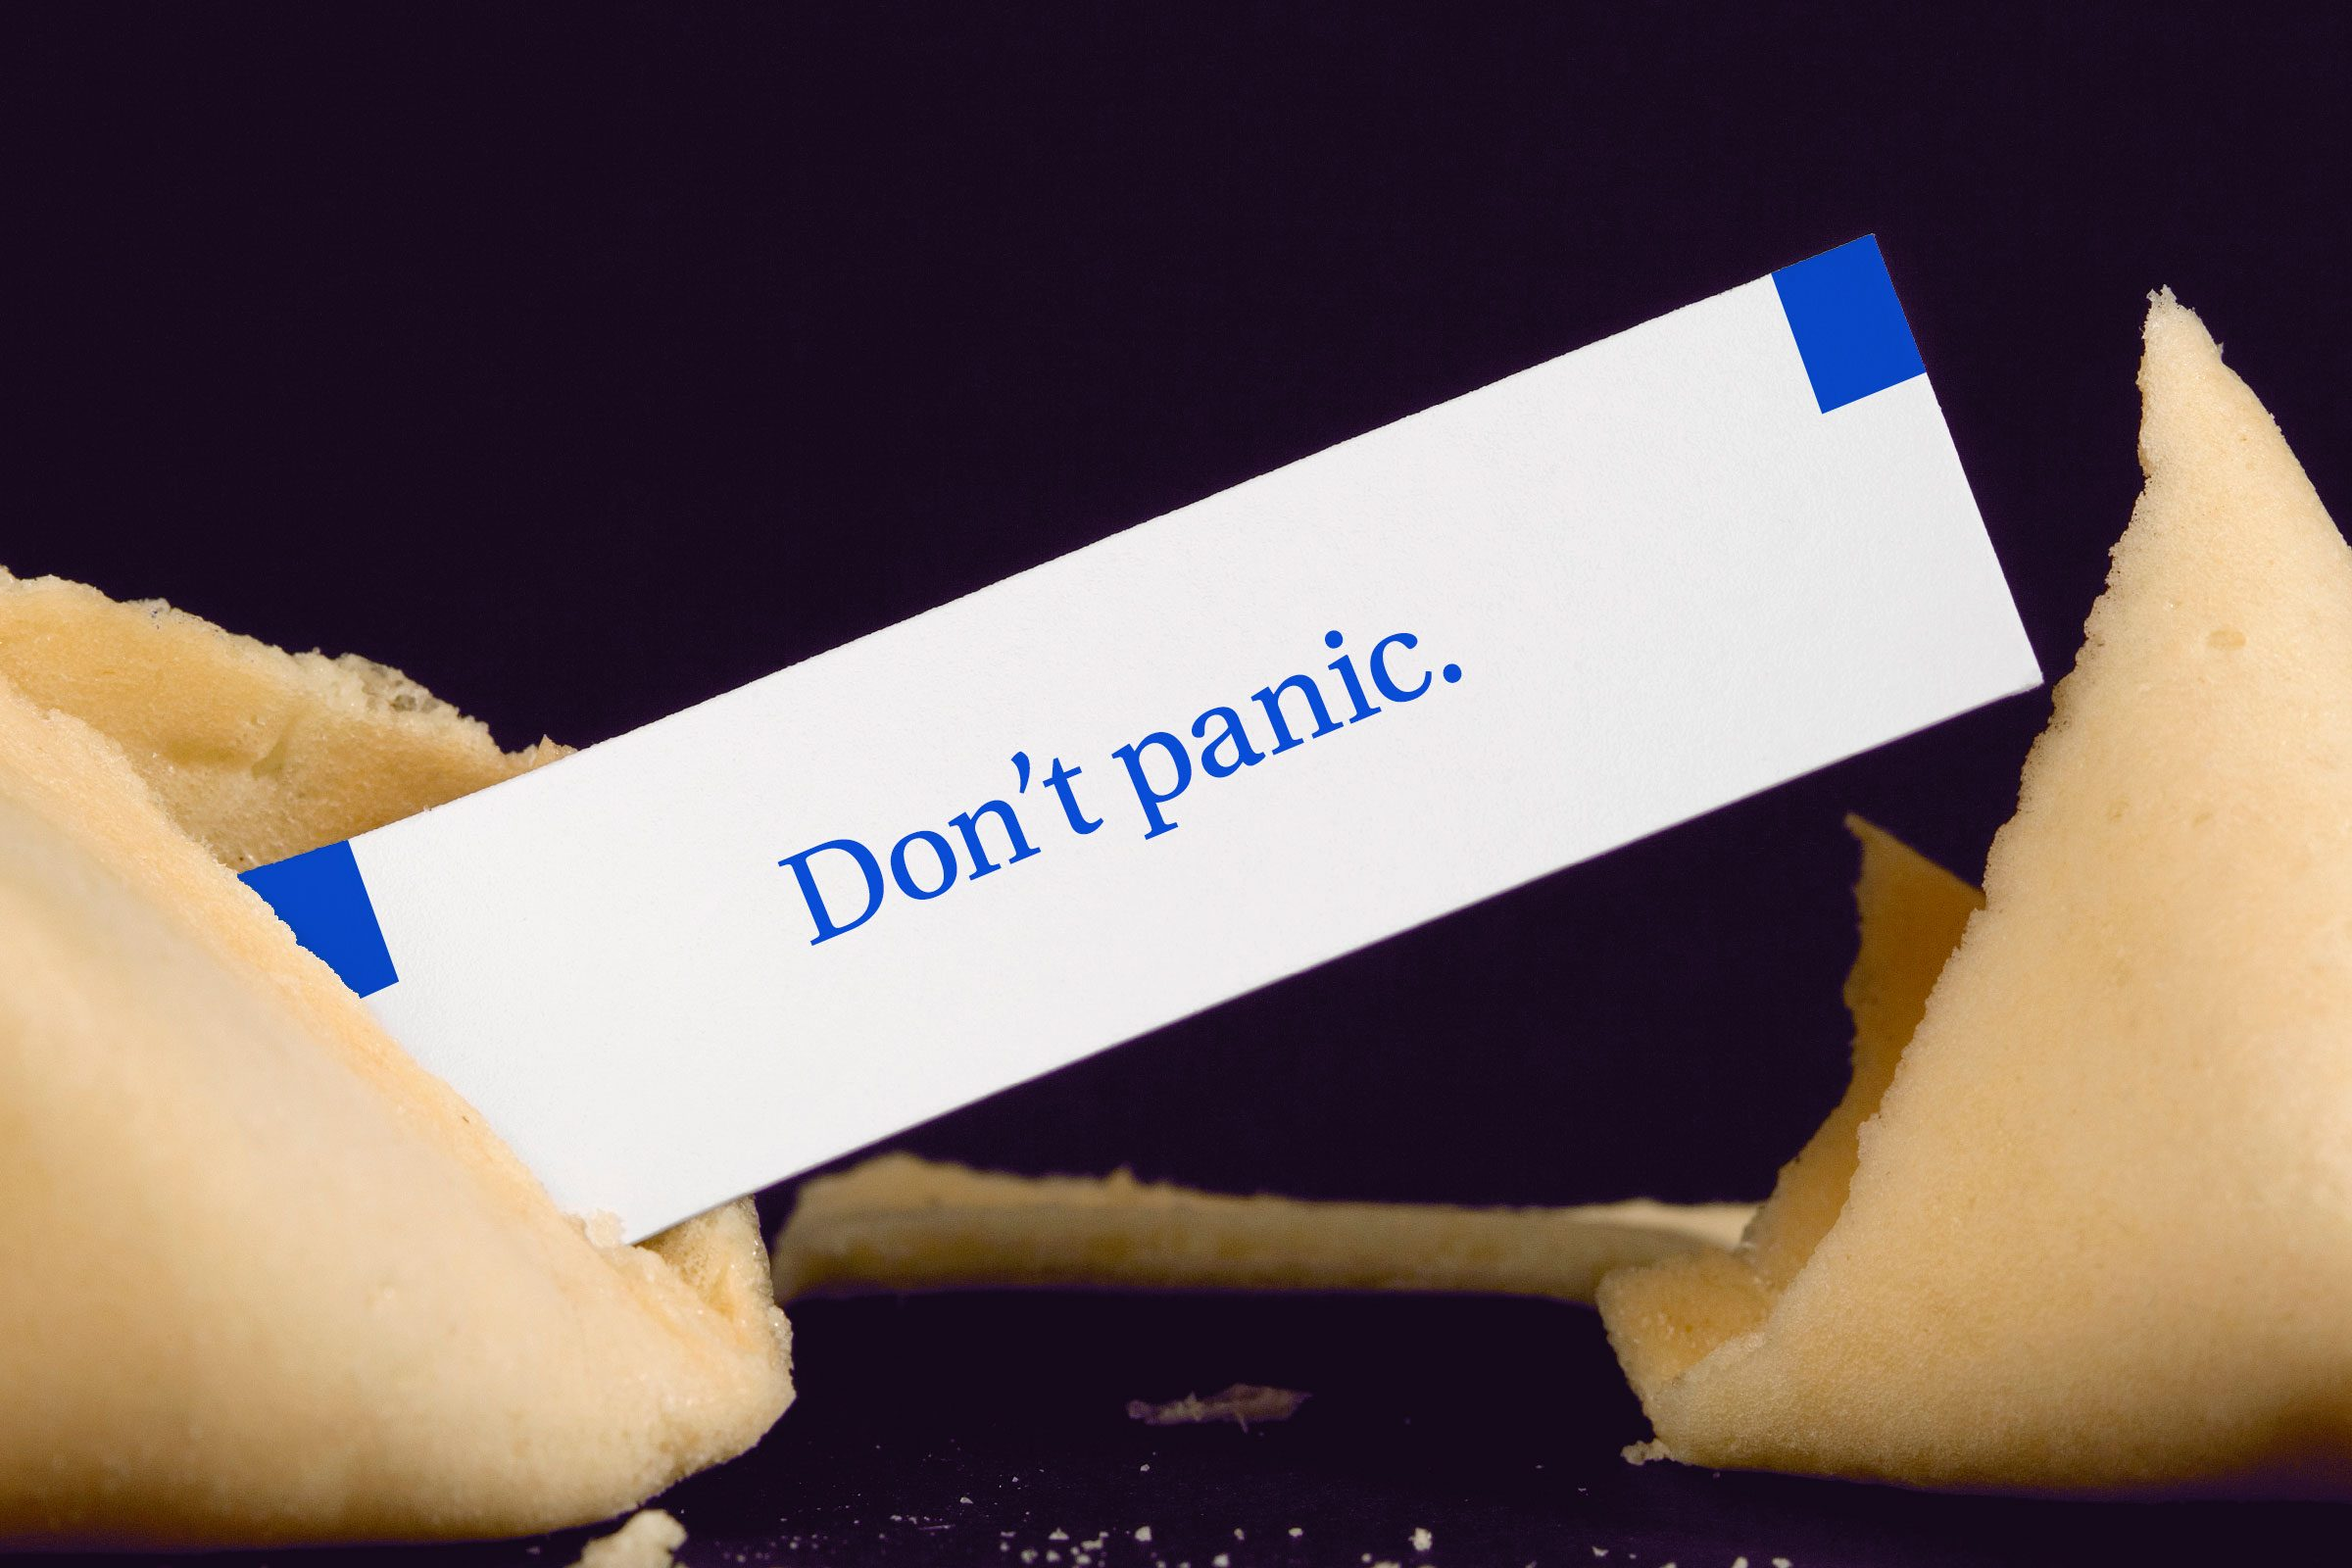 For image: Don't panic.